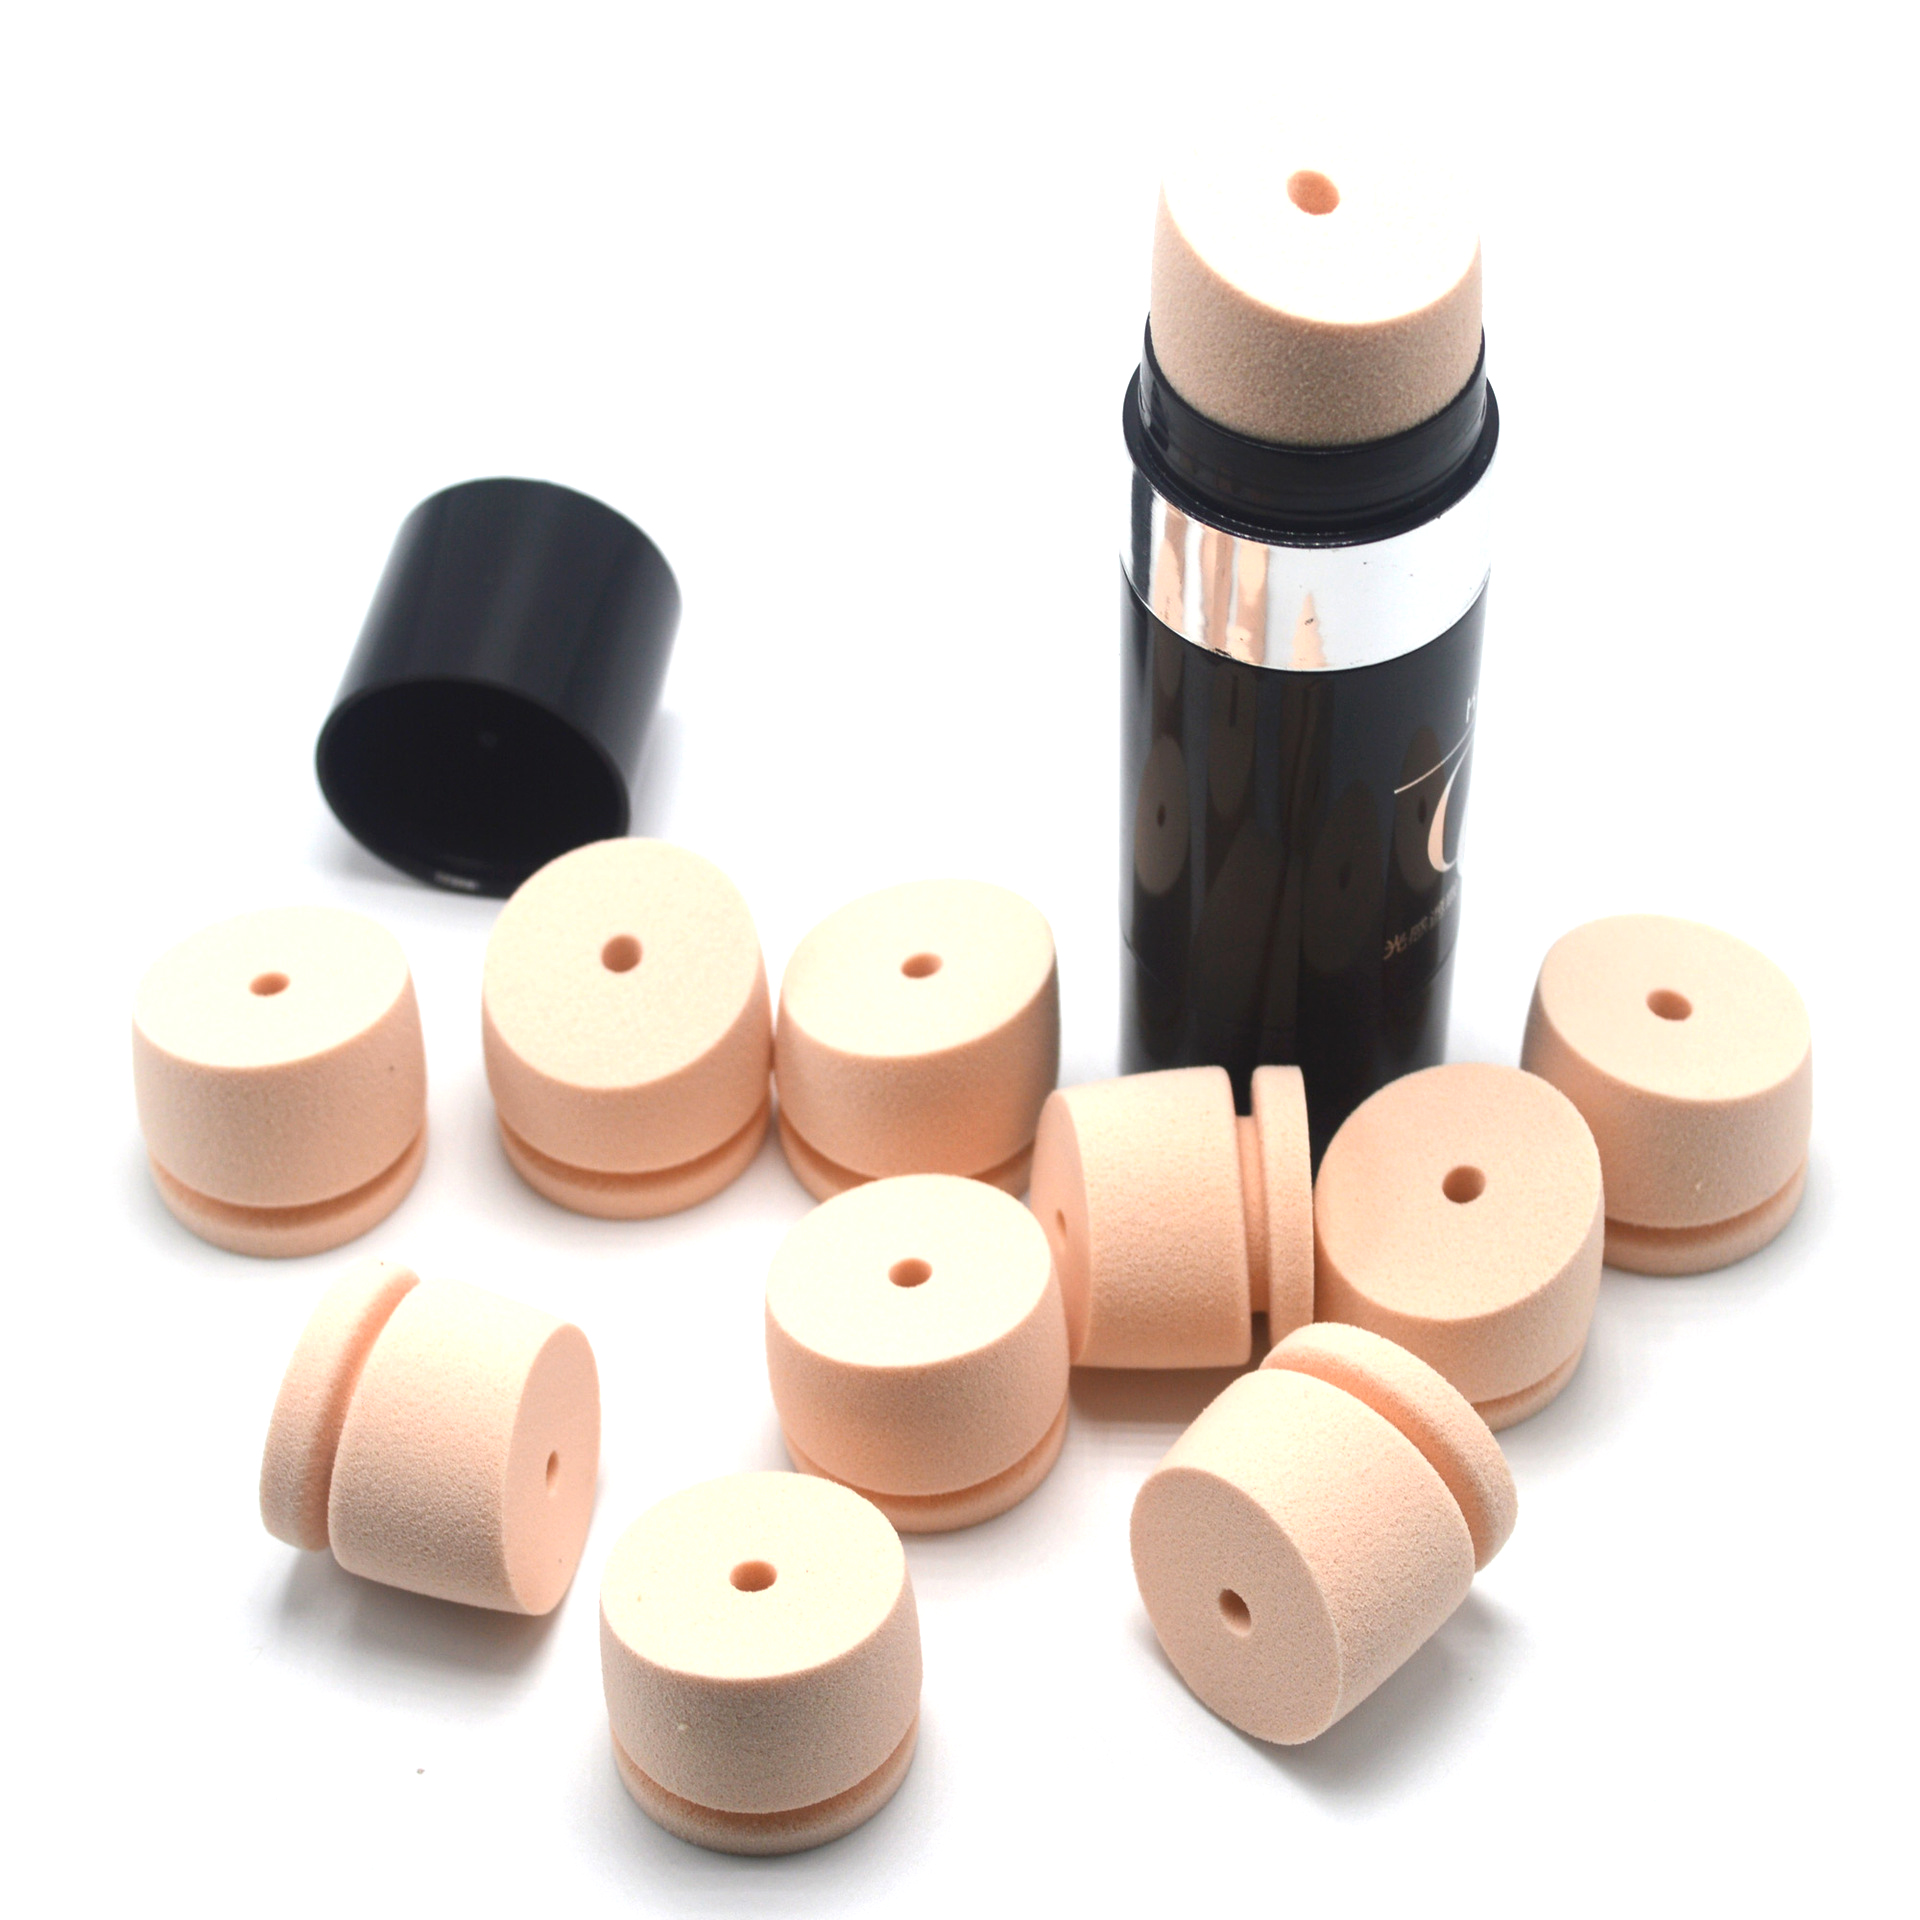 China Supplier Factory Wholesale Mini SBR Foundation Makeup Sponge Powder Puff For Daily Makeup Low Prices